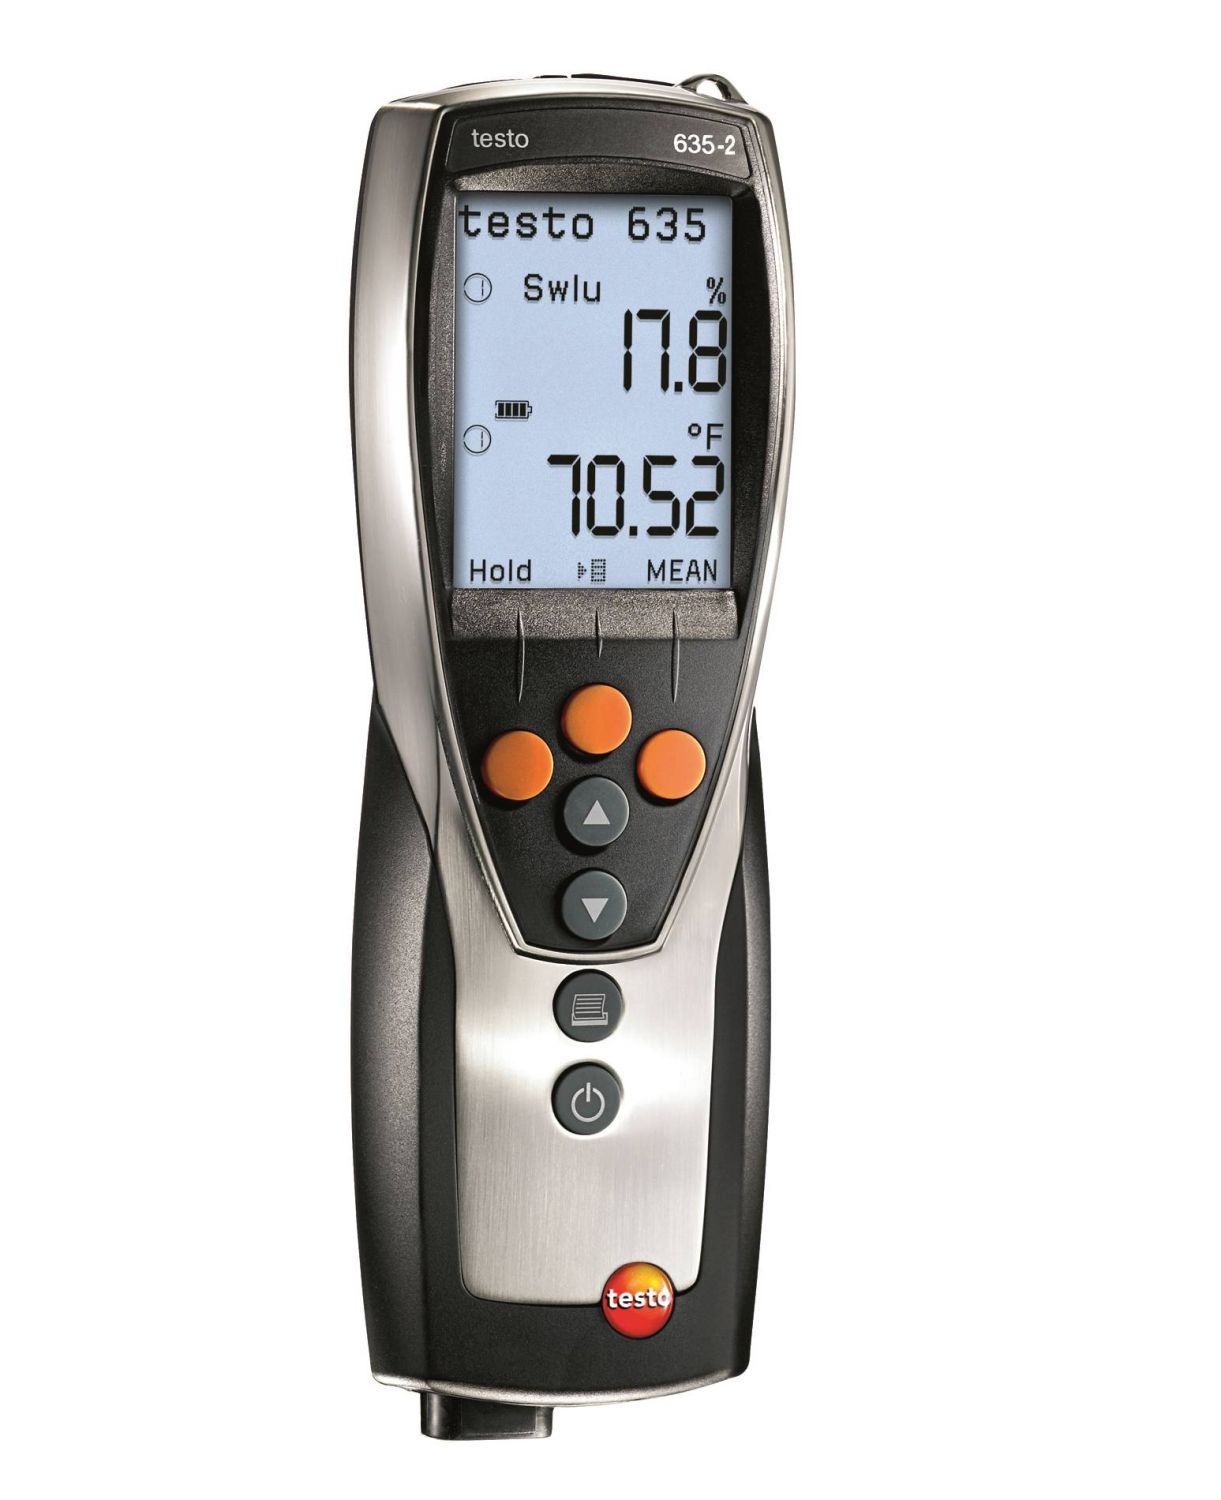 Testo 635-2 - Temperature and humidity measuring instrument